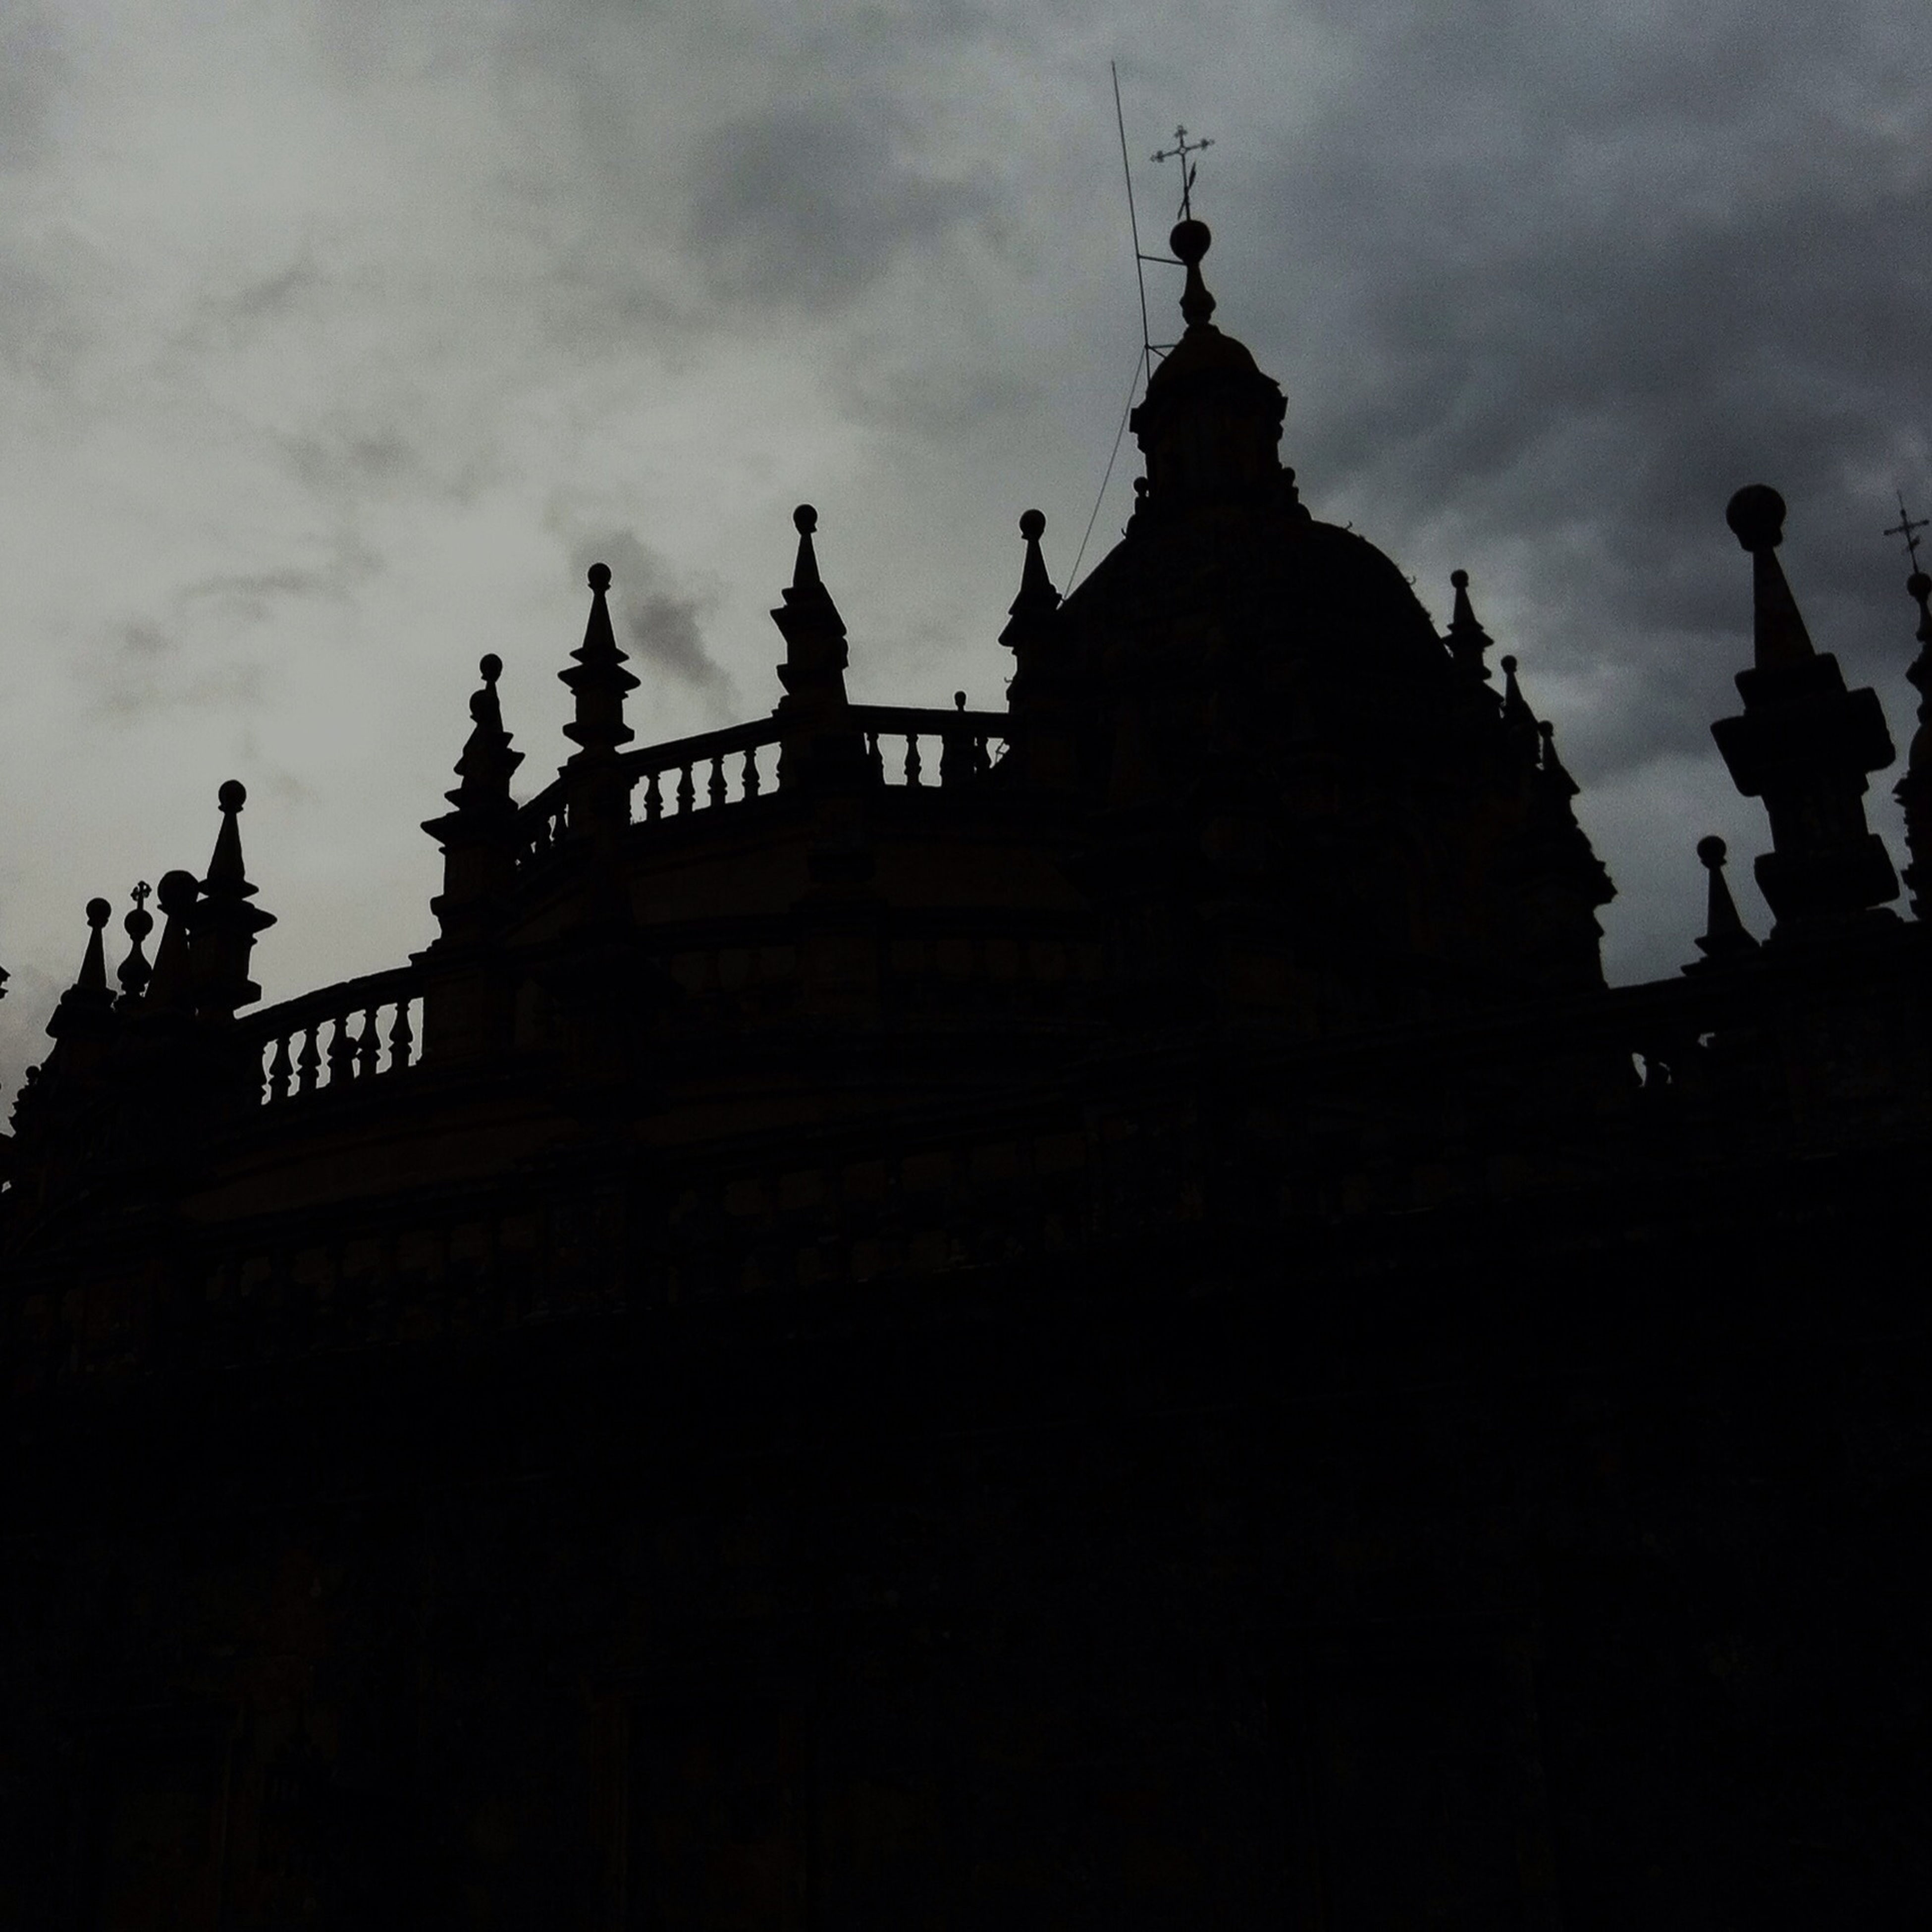 place of worship, religion, architecture, spirituality, built structure, building exterior, sky, low angle view, church, silhouette, temple - building, cloud - sky, dusk, cross, sunset, famous place, history, cathedral